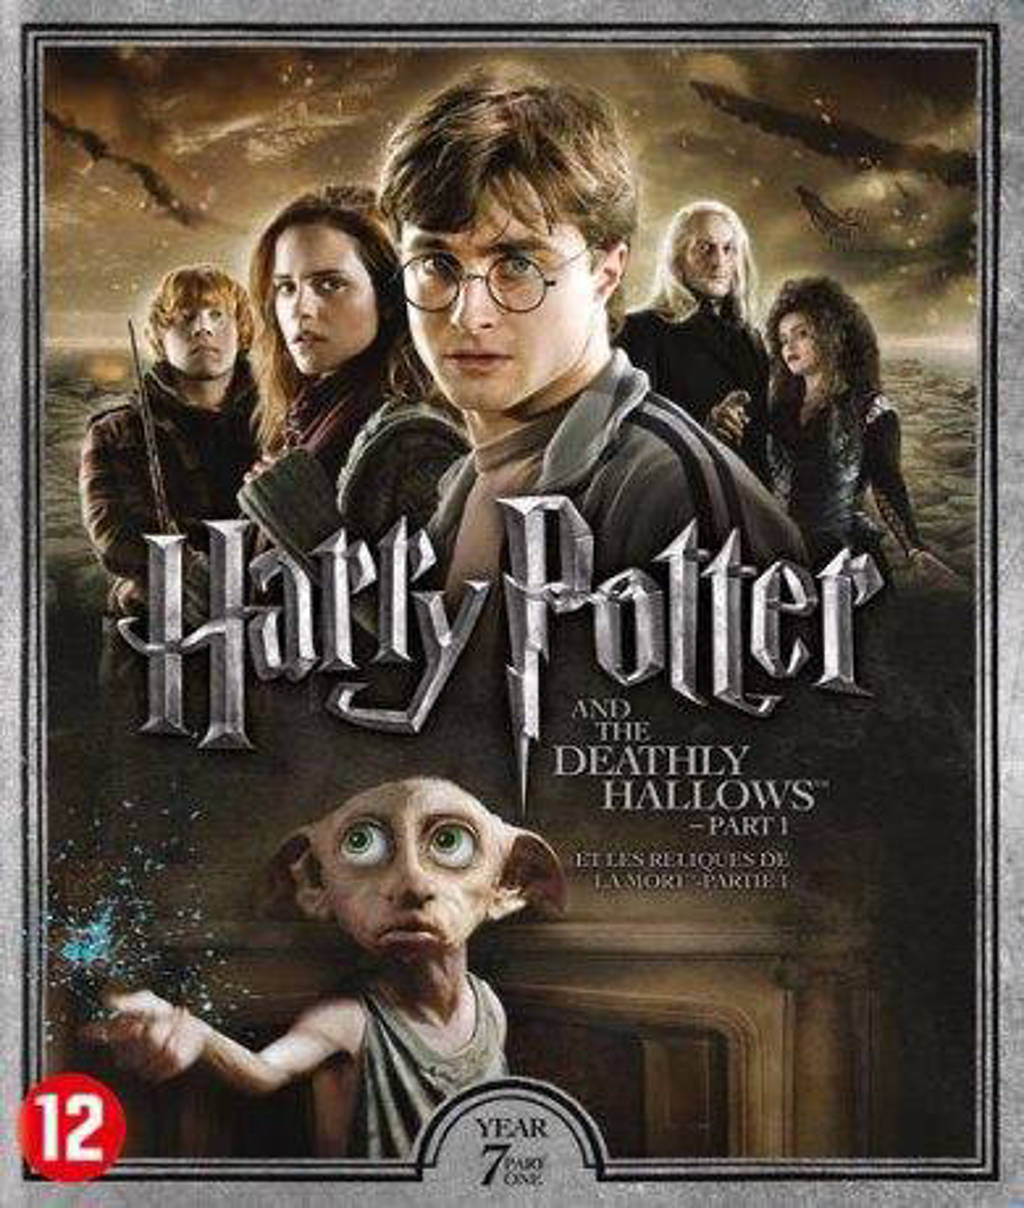 Harry Potter year 7 - The deathly hallows part 1 (Blu-ray)